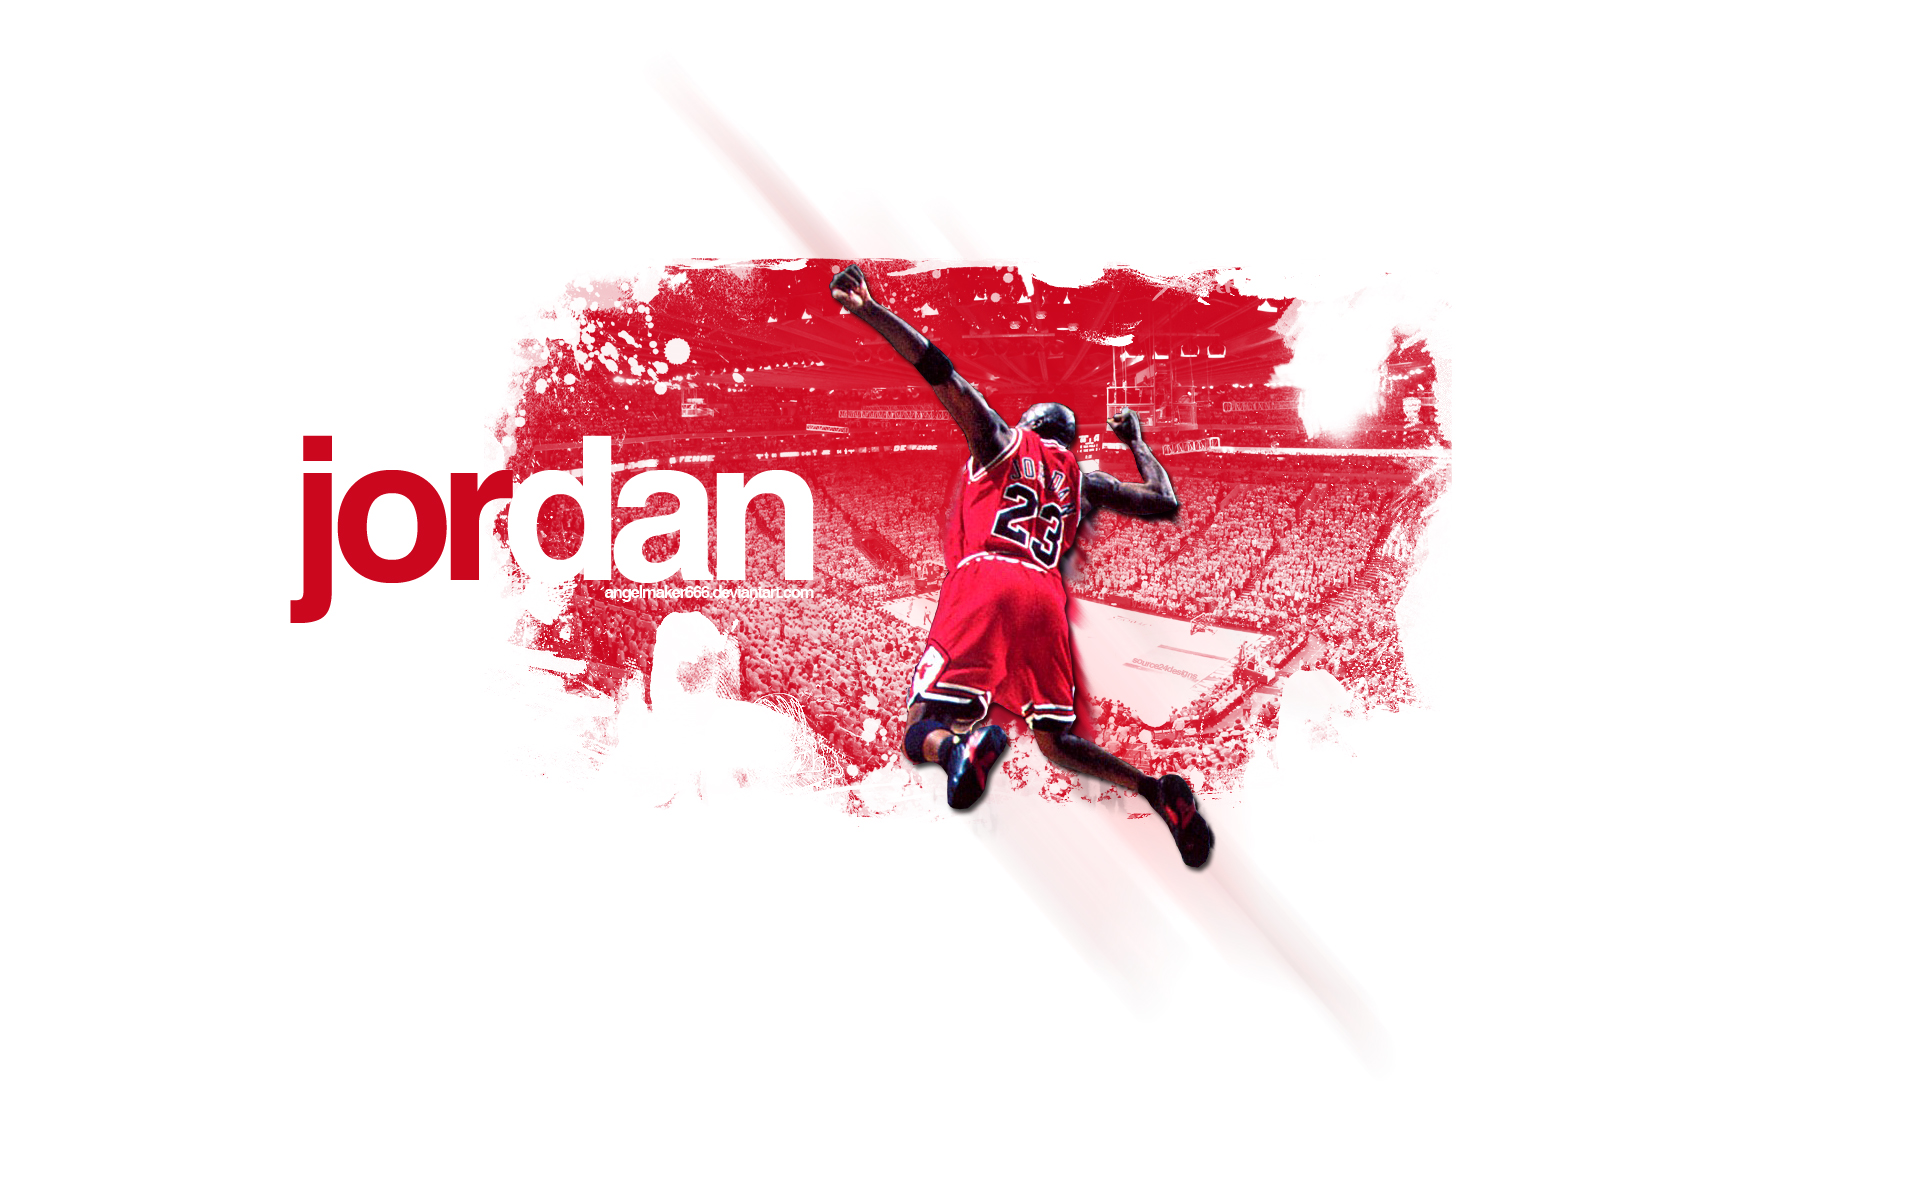 Michael Jordan Nation Wallpaper By IshaanMishra Michael Jordan Nation  Wallpaper By IshaanMishra